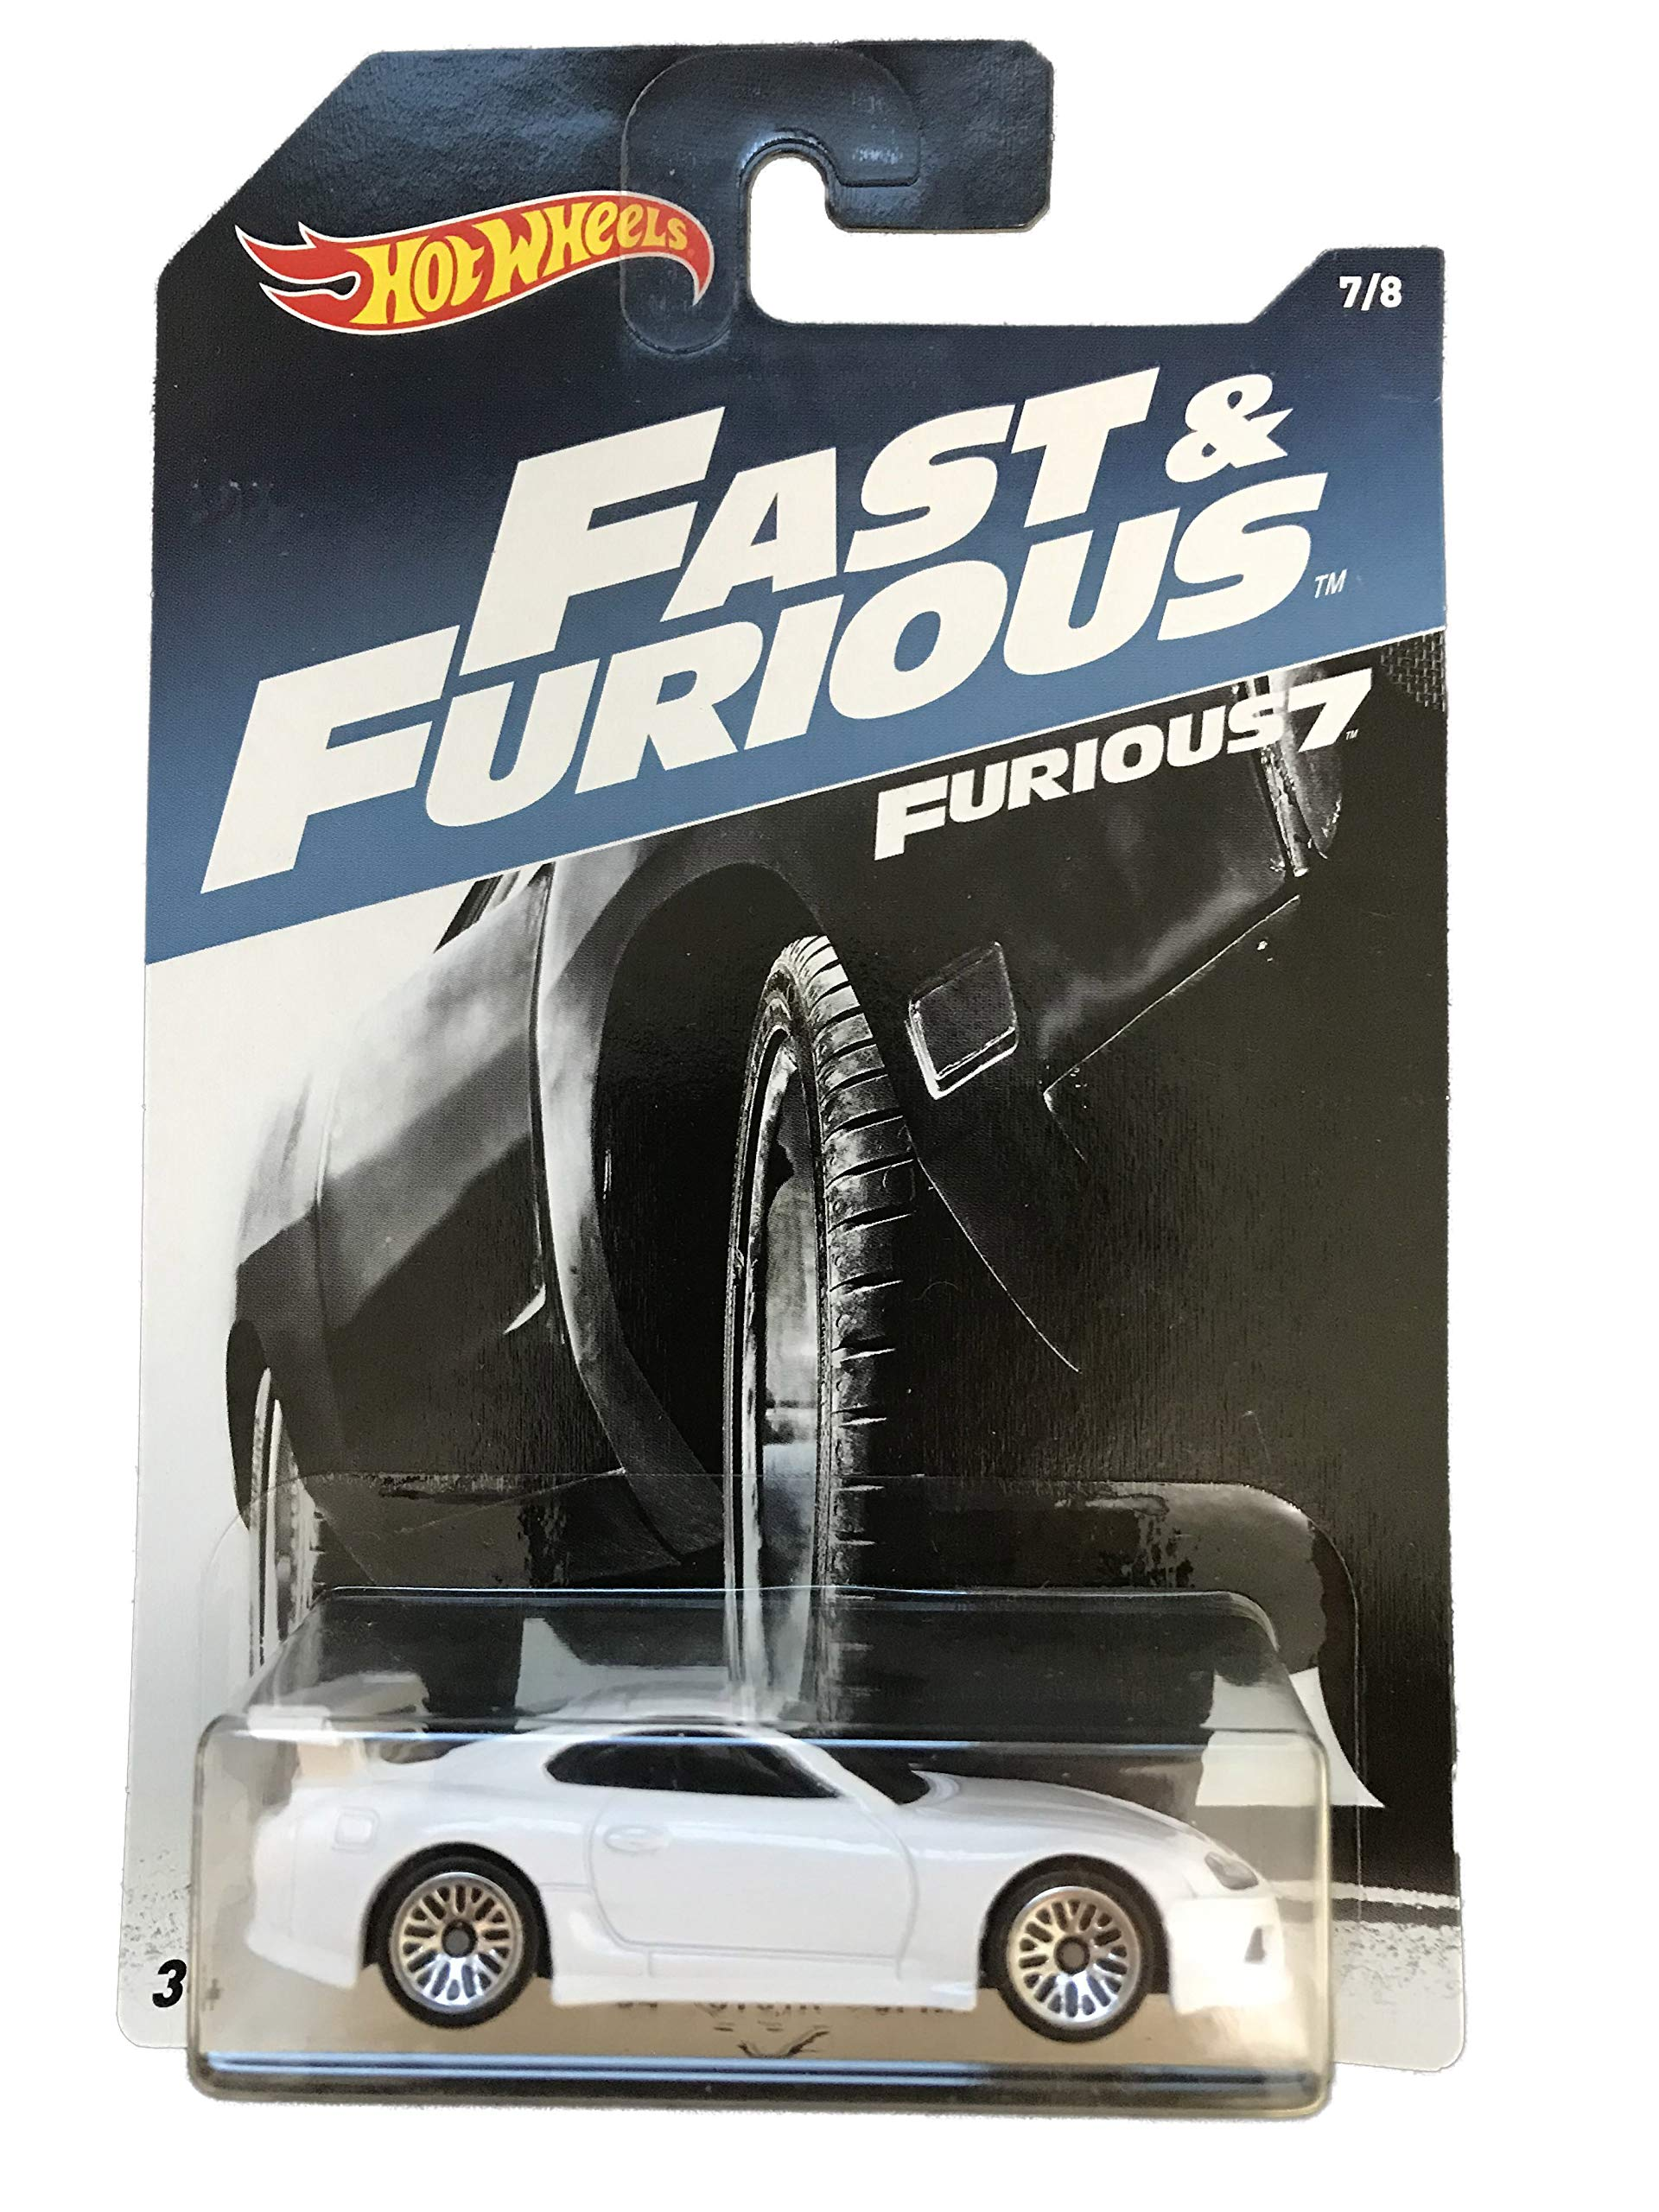 Mattel Hot Wheels Fast & Furious 7 White 94 Toyota Supra 7/8